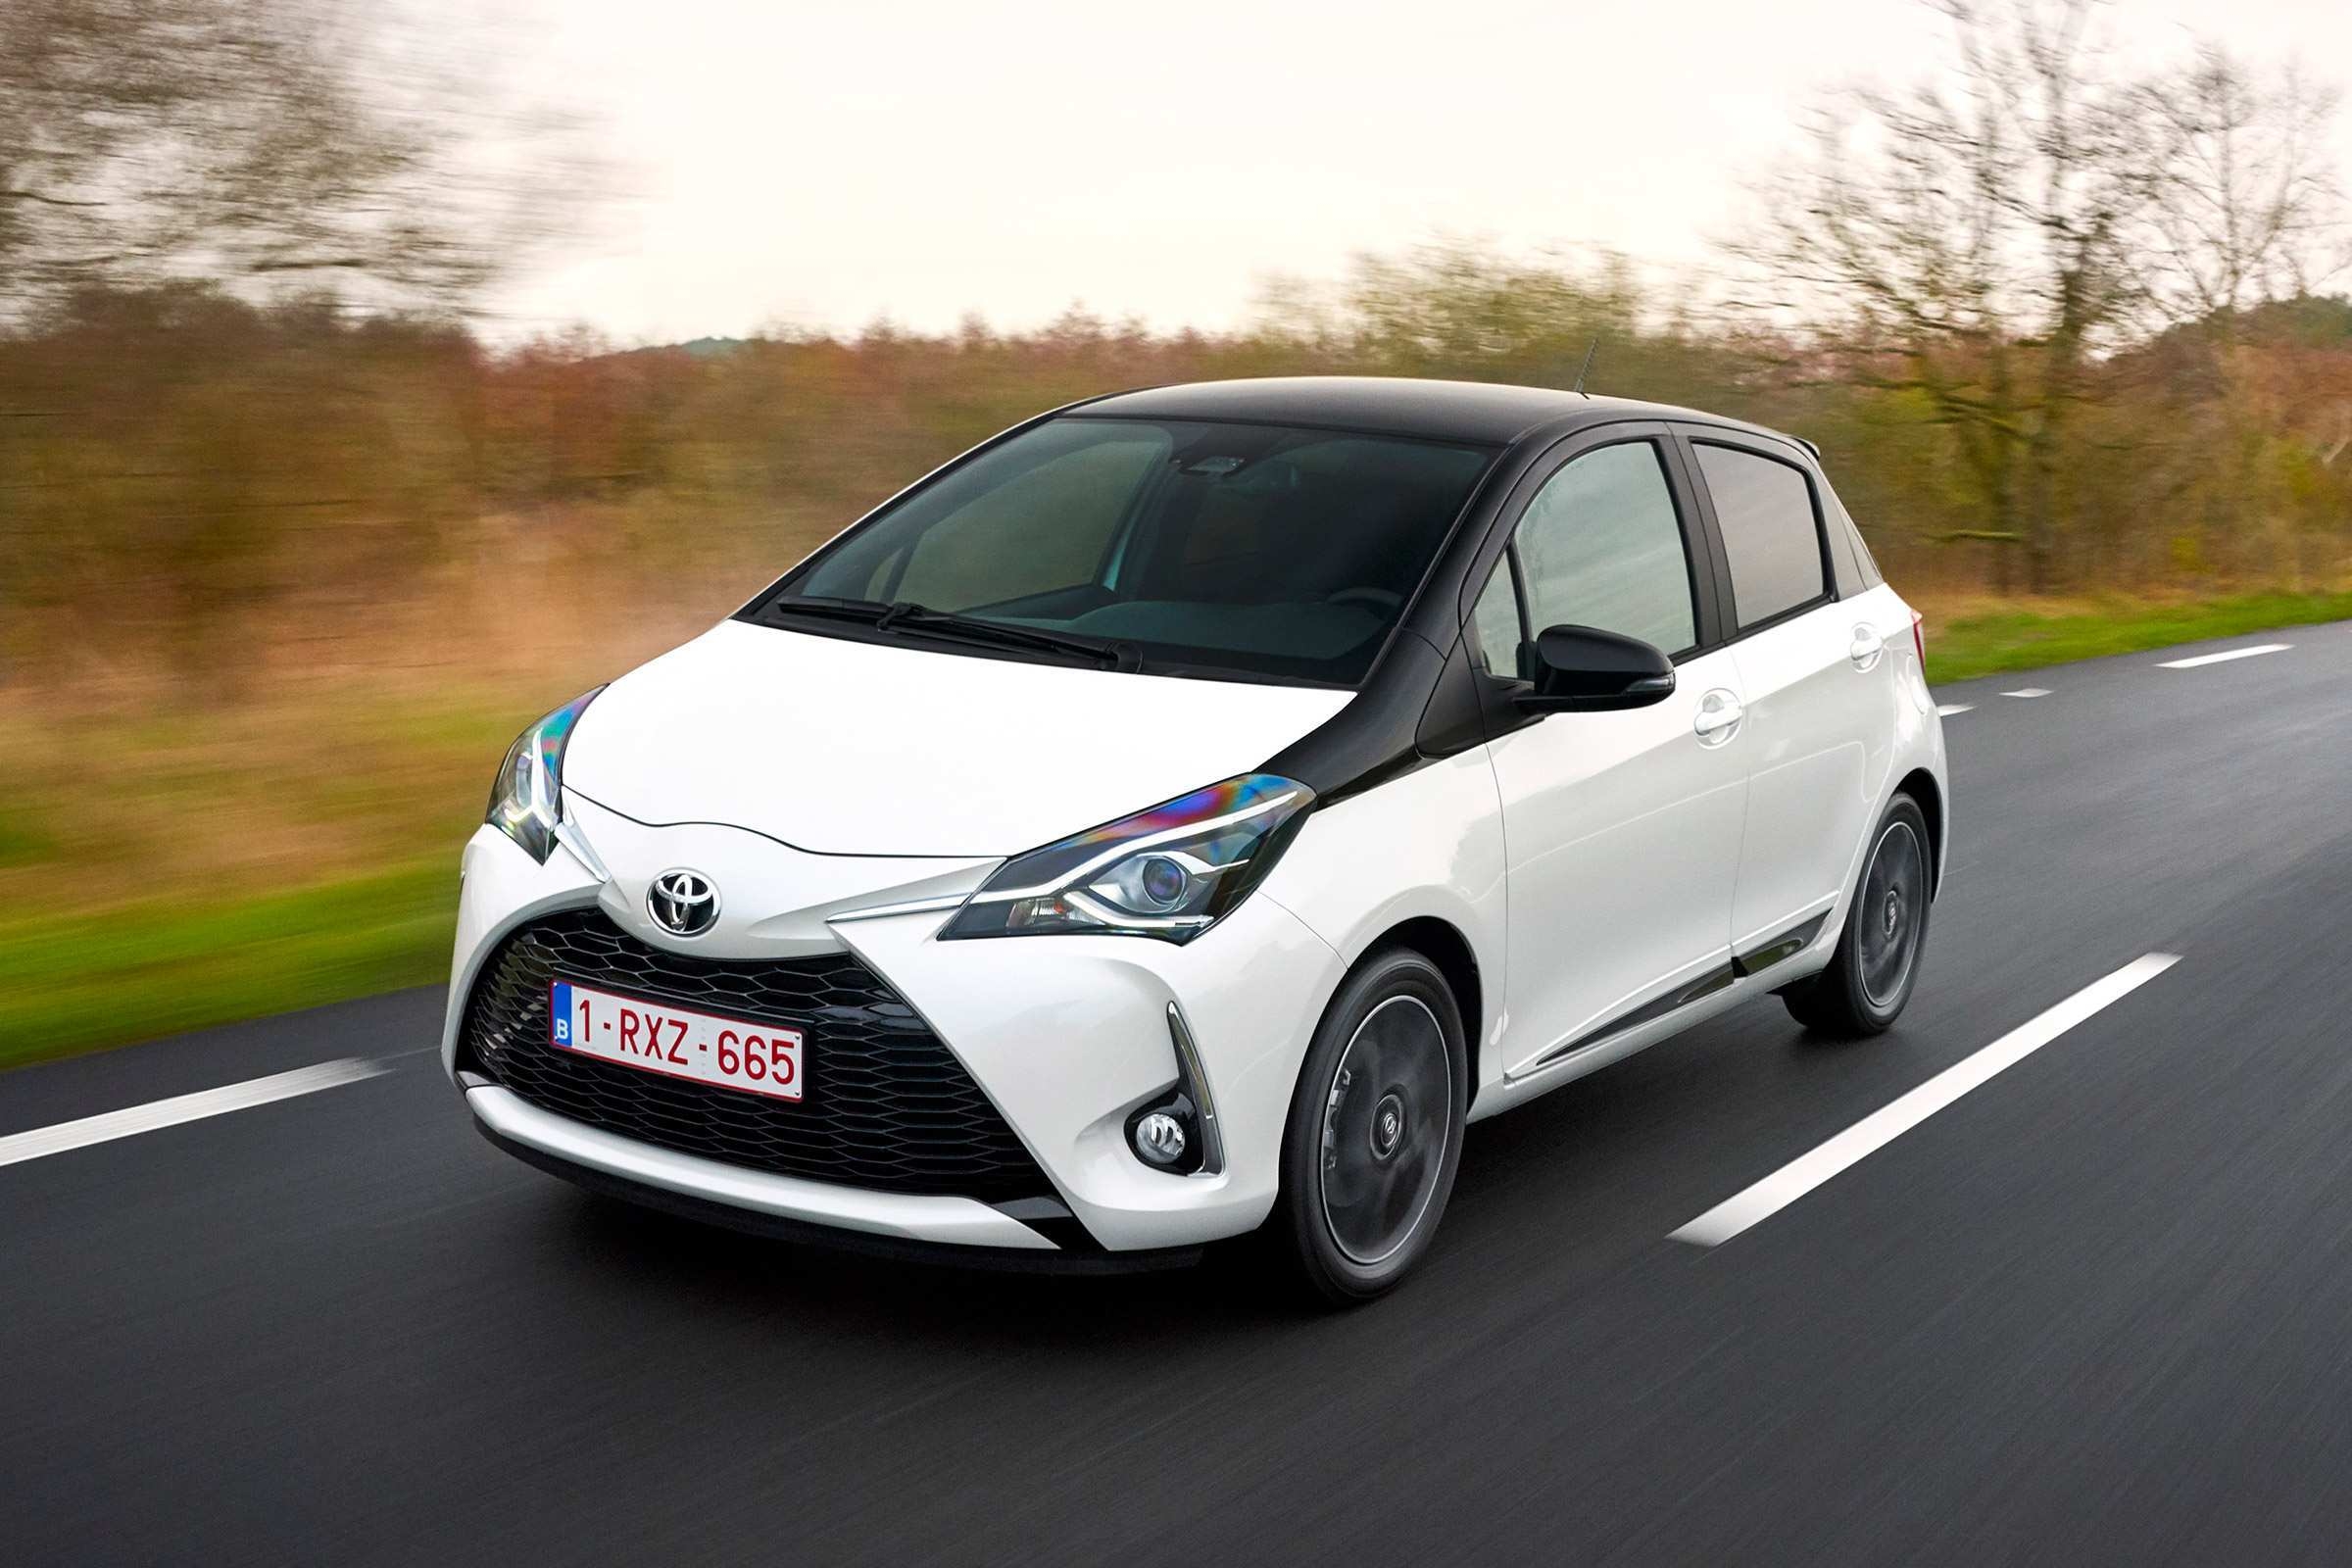 30 Concept of Best Yaris Toyota 2019 Precio Price And Review Price and Review by Best Yaris Toyota 2019 Precio Price And Review